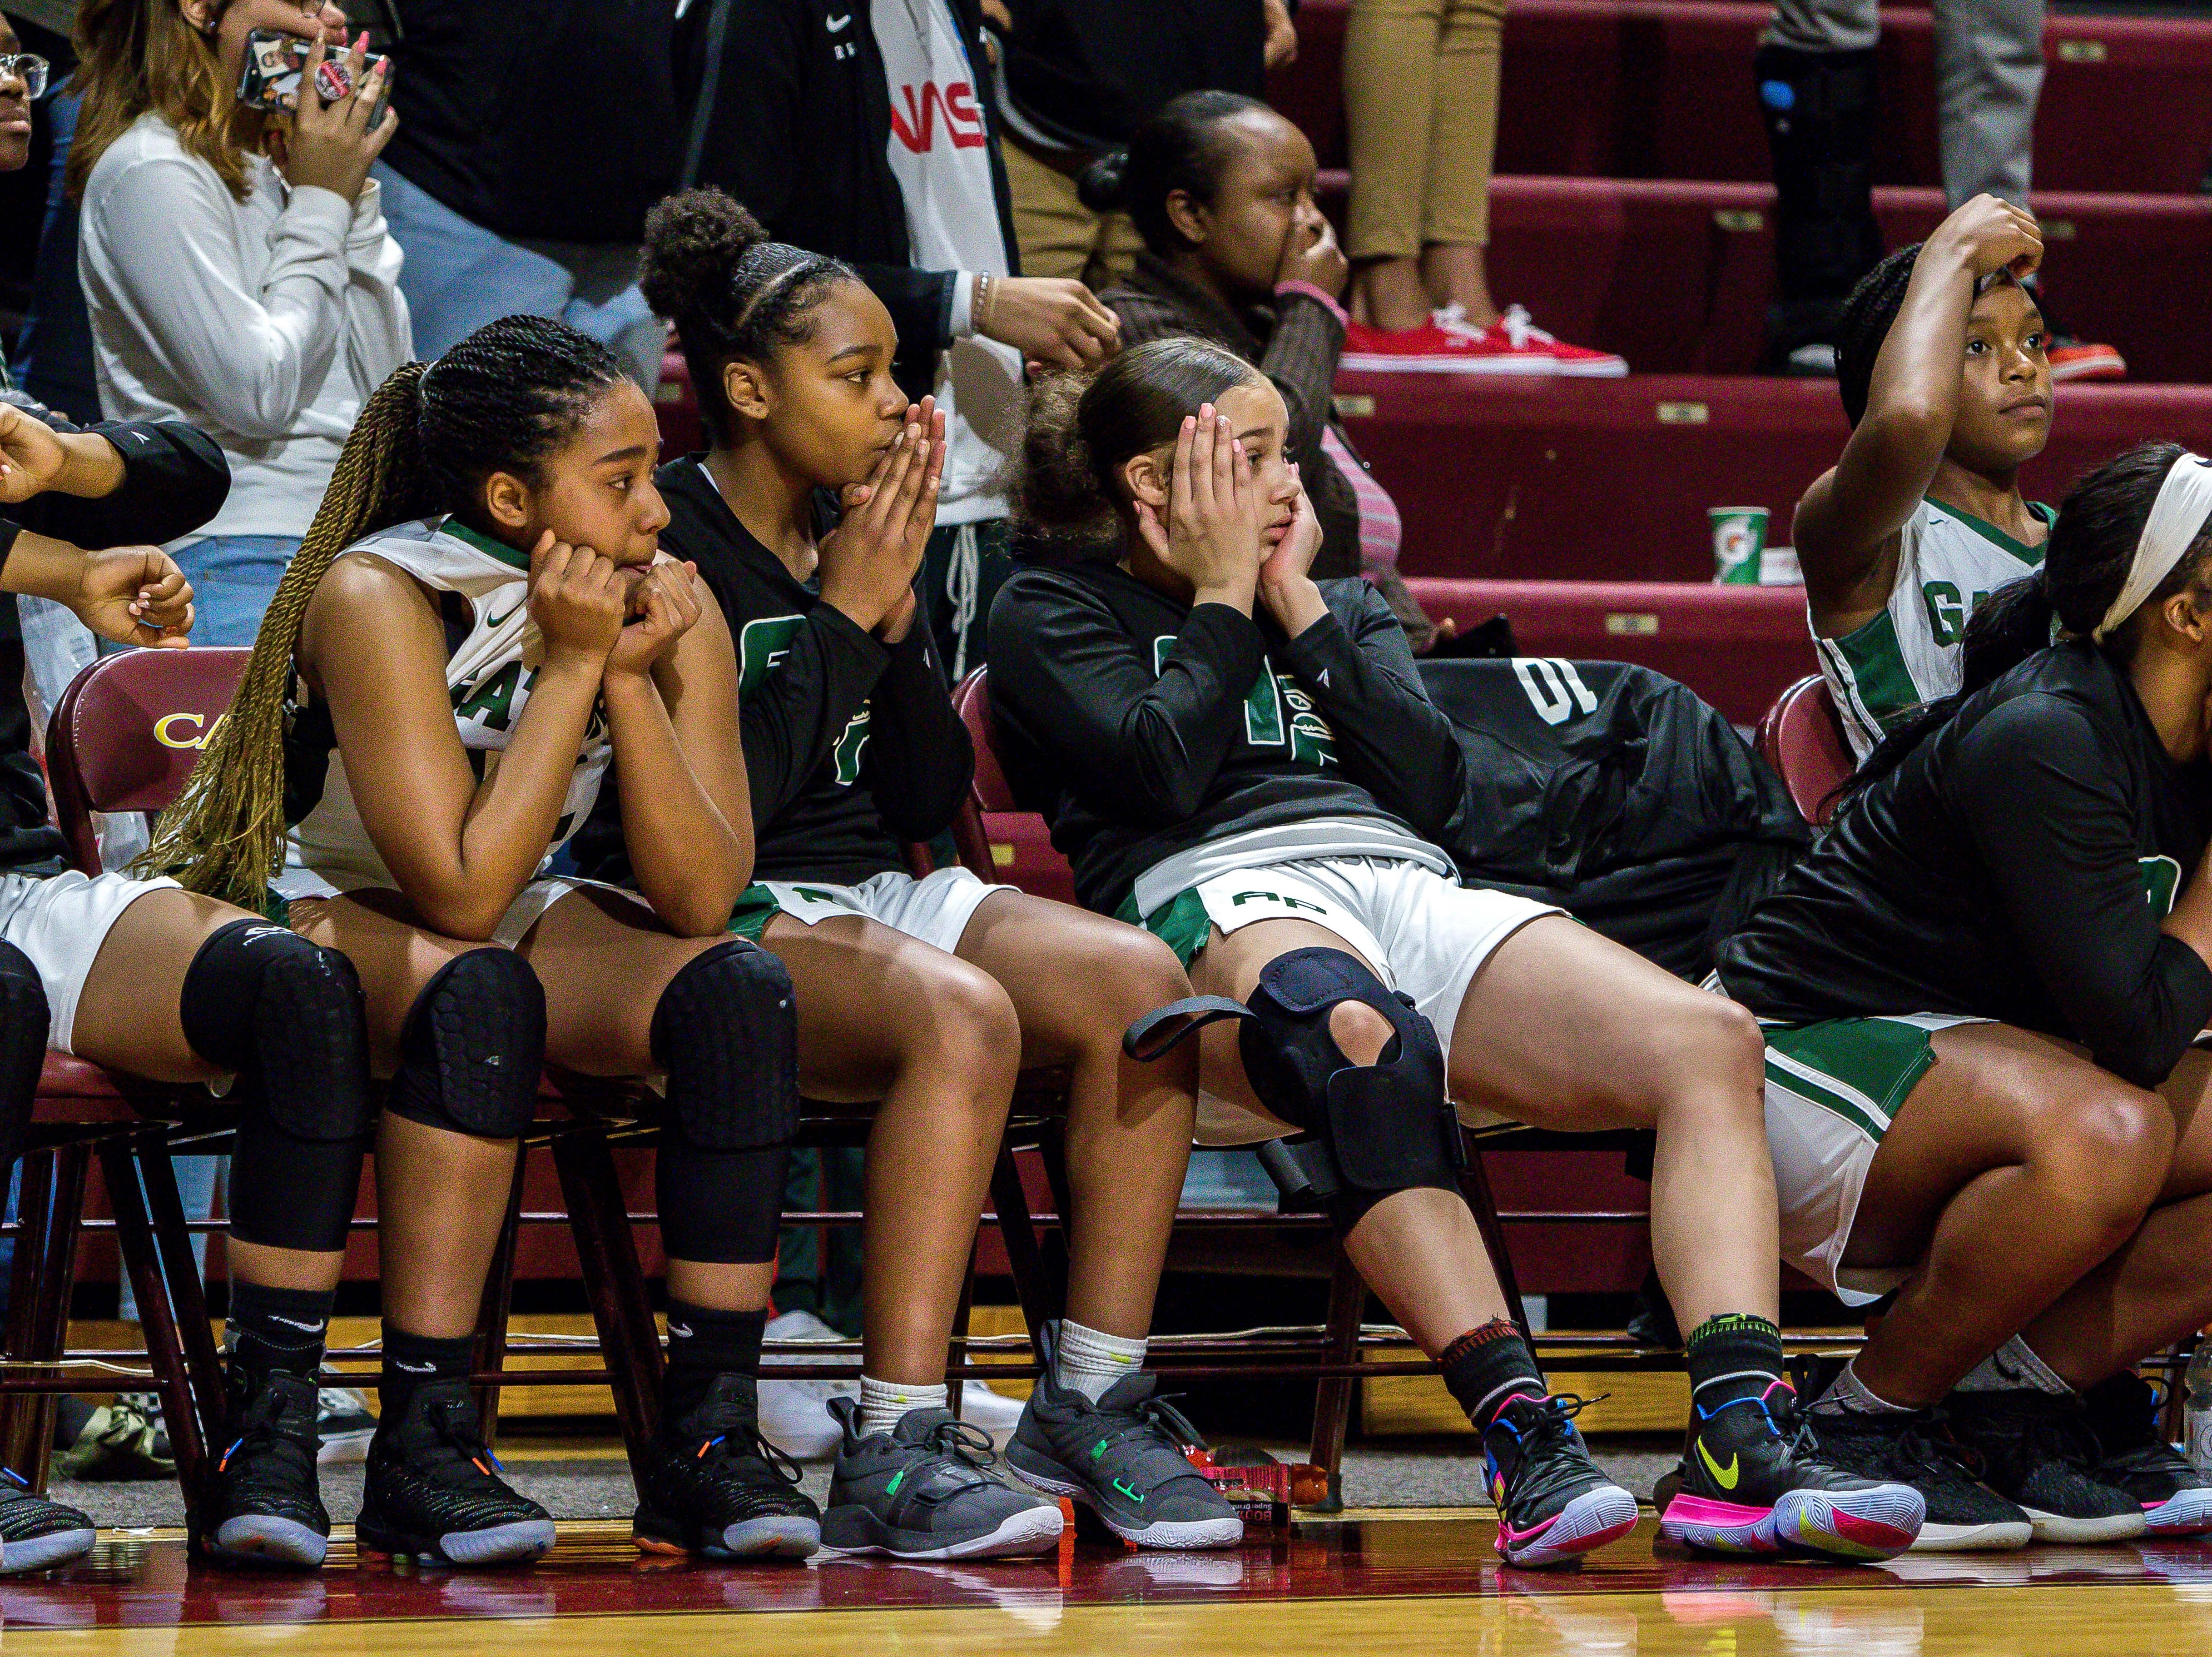 Ypsilanti Arbor Prep players react to their 37-33 overtime loss to Pewamo-Westphalia on Thursday, Mar. 21, 2019 in the MHSAA Div. 3 girls basketball semifinals at Calvin College in Grand Rapids, Michigan.